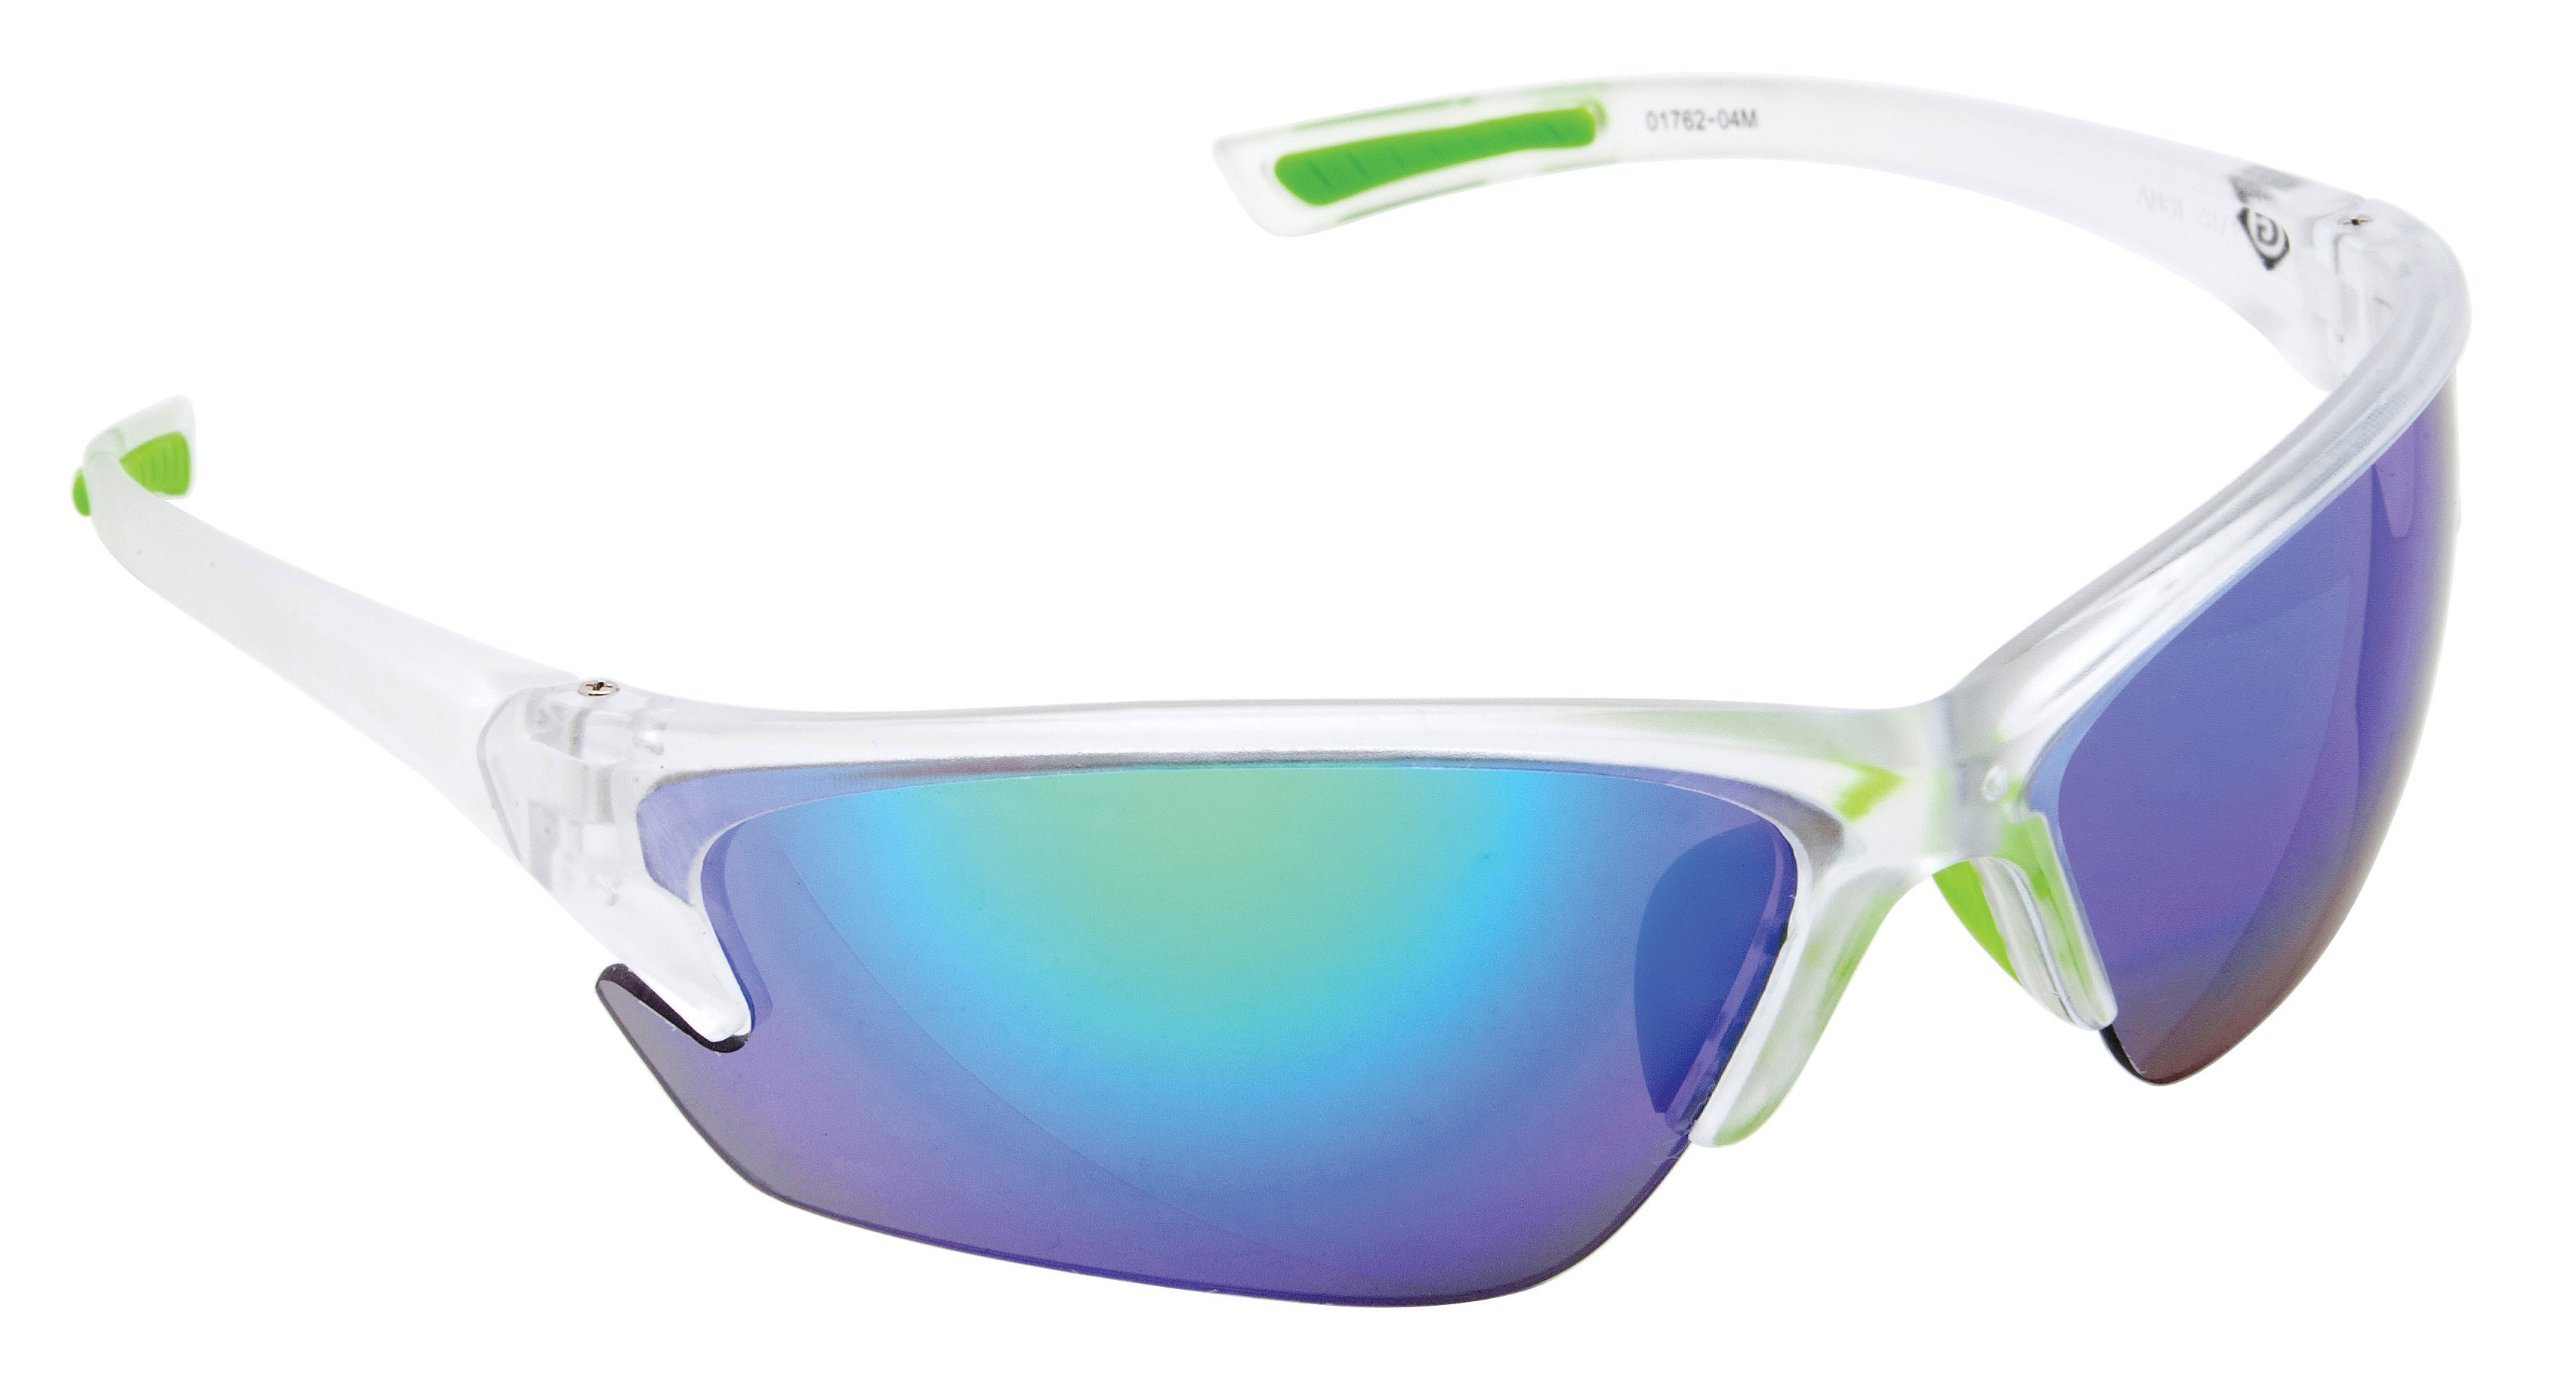 Greenlee 01762-04M Pro View Safety Glasses, Mirror